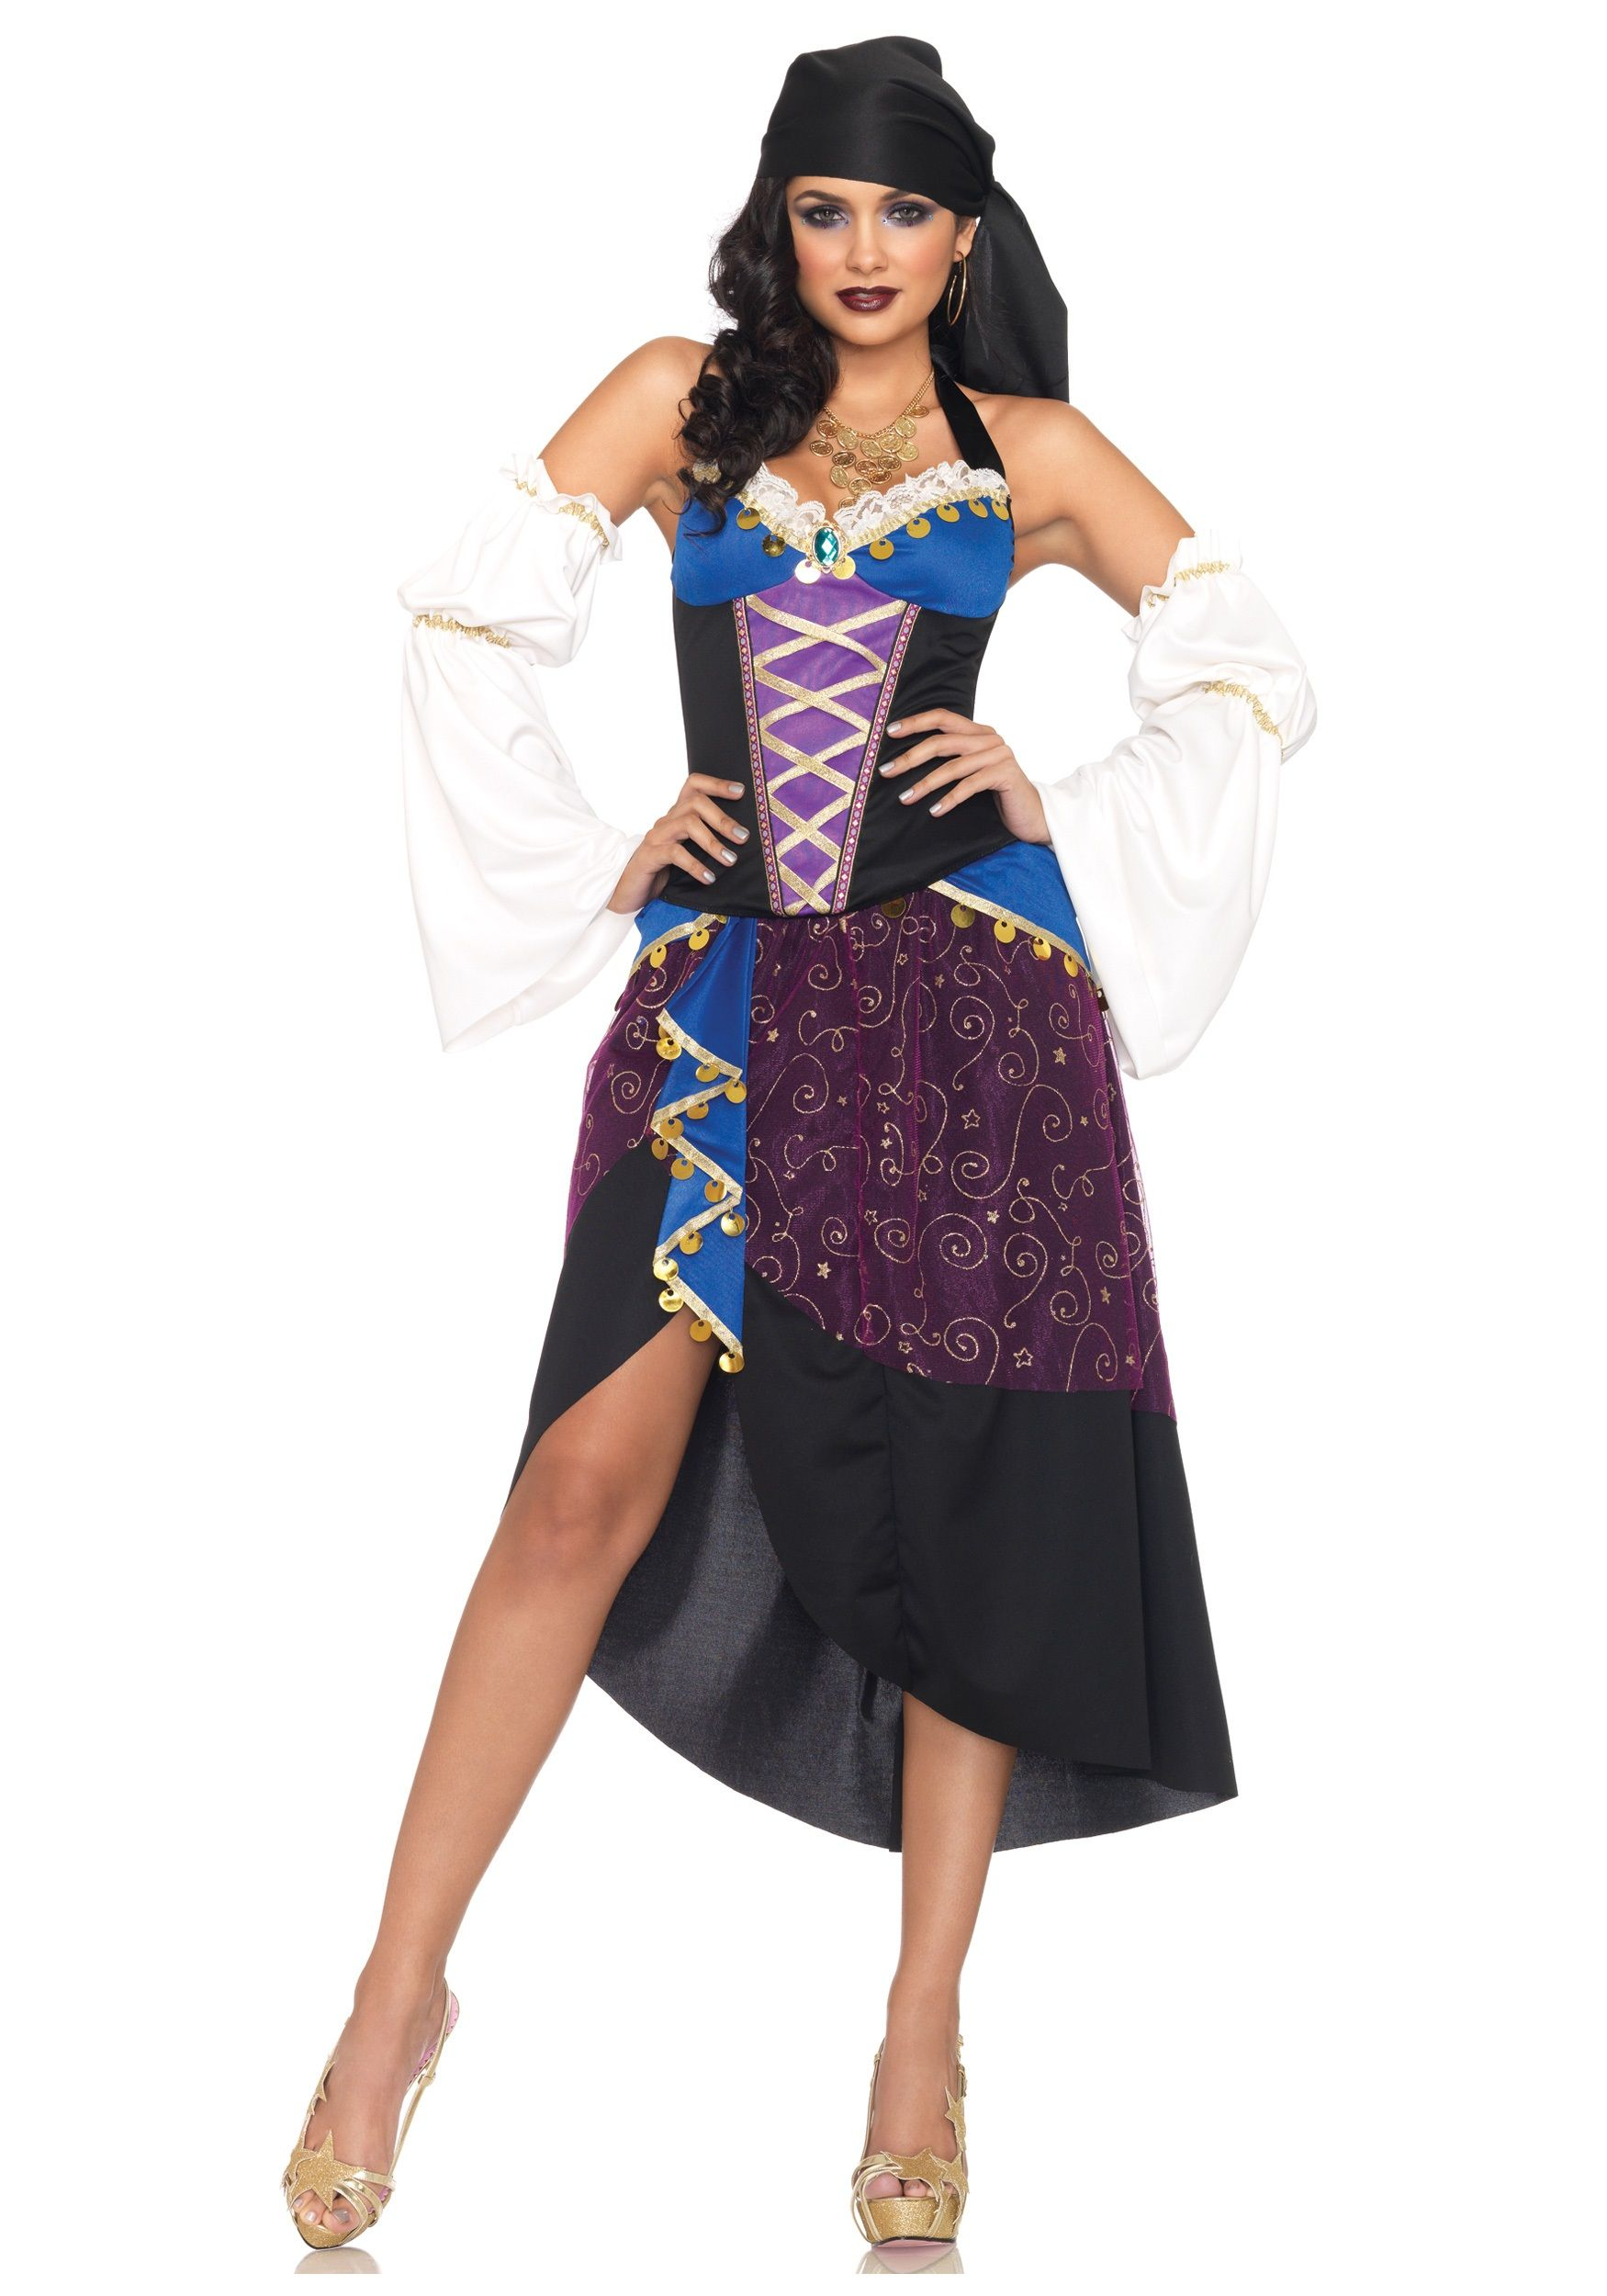 Gypsy style  sc 1 st  Pinterest & Gypsy style | Gypsies | Pinterest | Costumes and Woman costumes